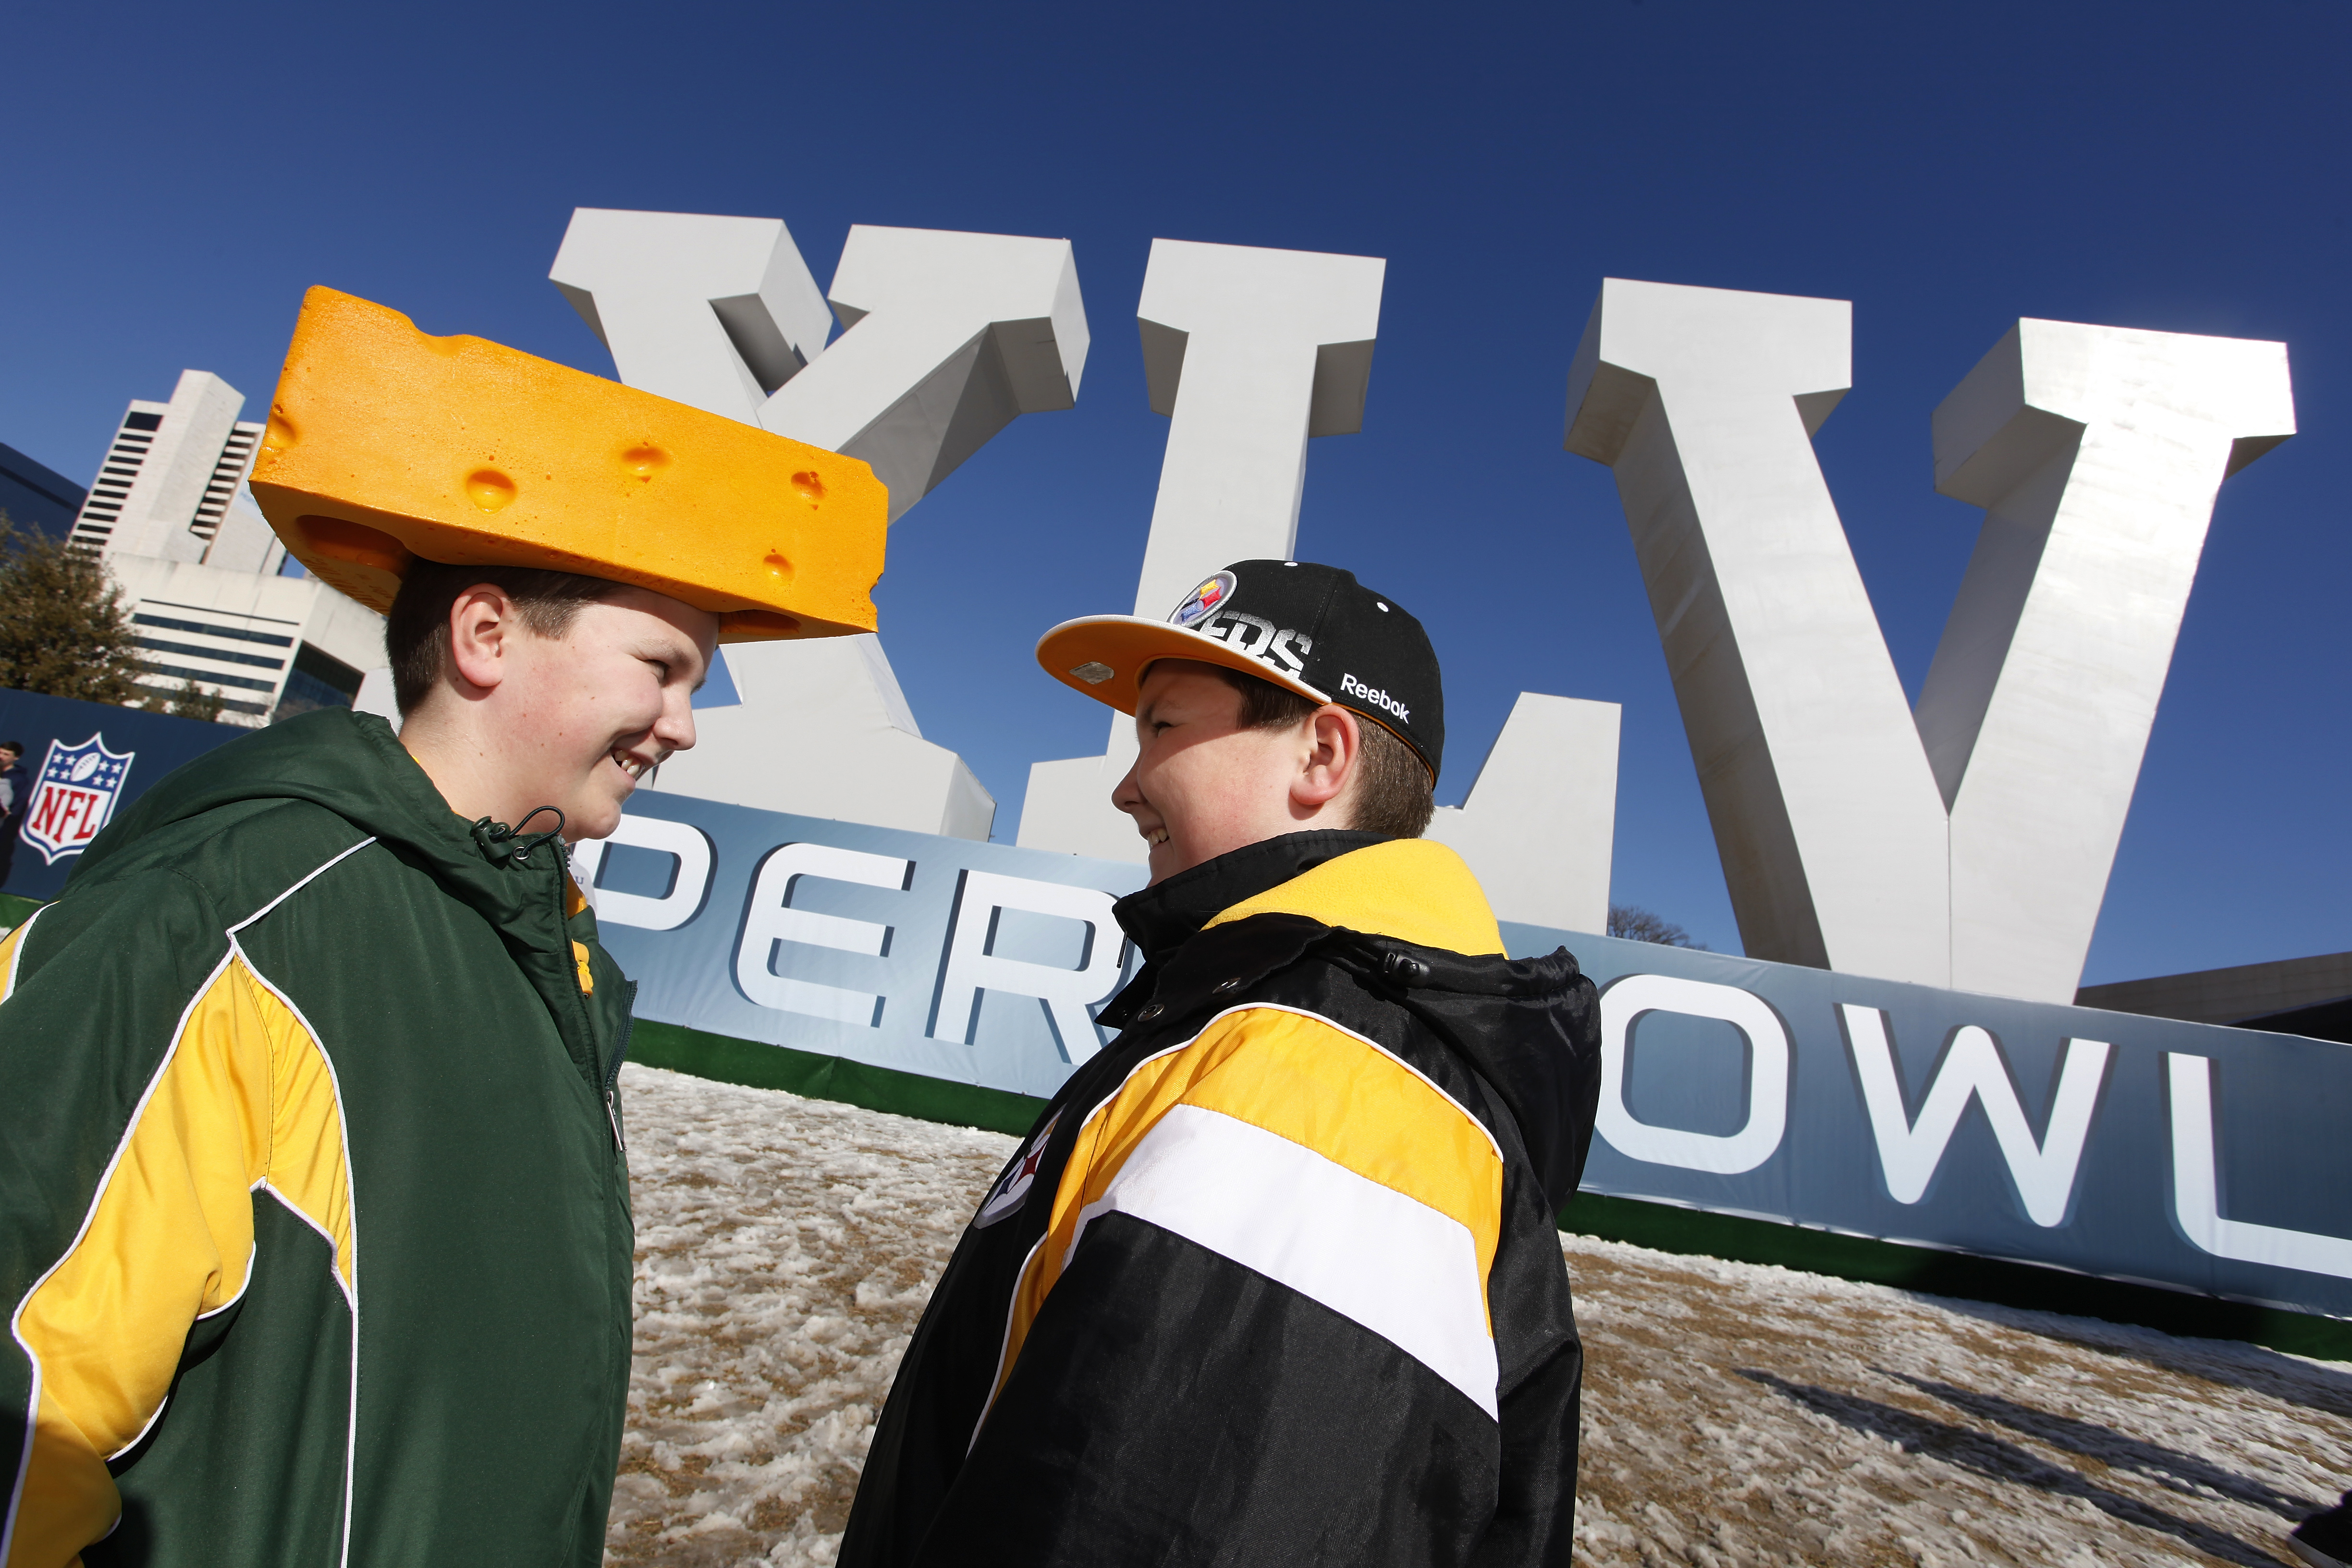 DALLAS, TX - FEBRUARY 5:  Twin brothers Michael (left) and Jon Mangless of Green Bay, Wisconsin wait outside before visiting the NFL Experience at the Dallas Convention Center on February 5, 2011 in Dallas, Texas. (Photo by Joe Robbins/Getty Images)